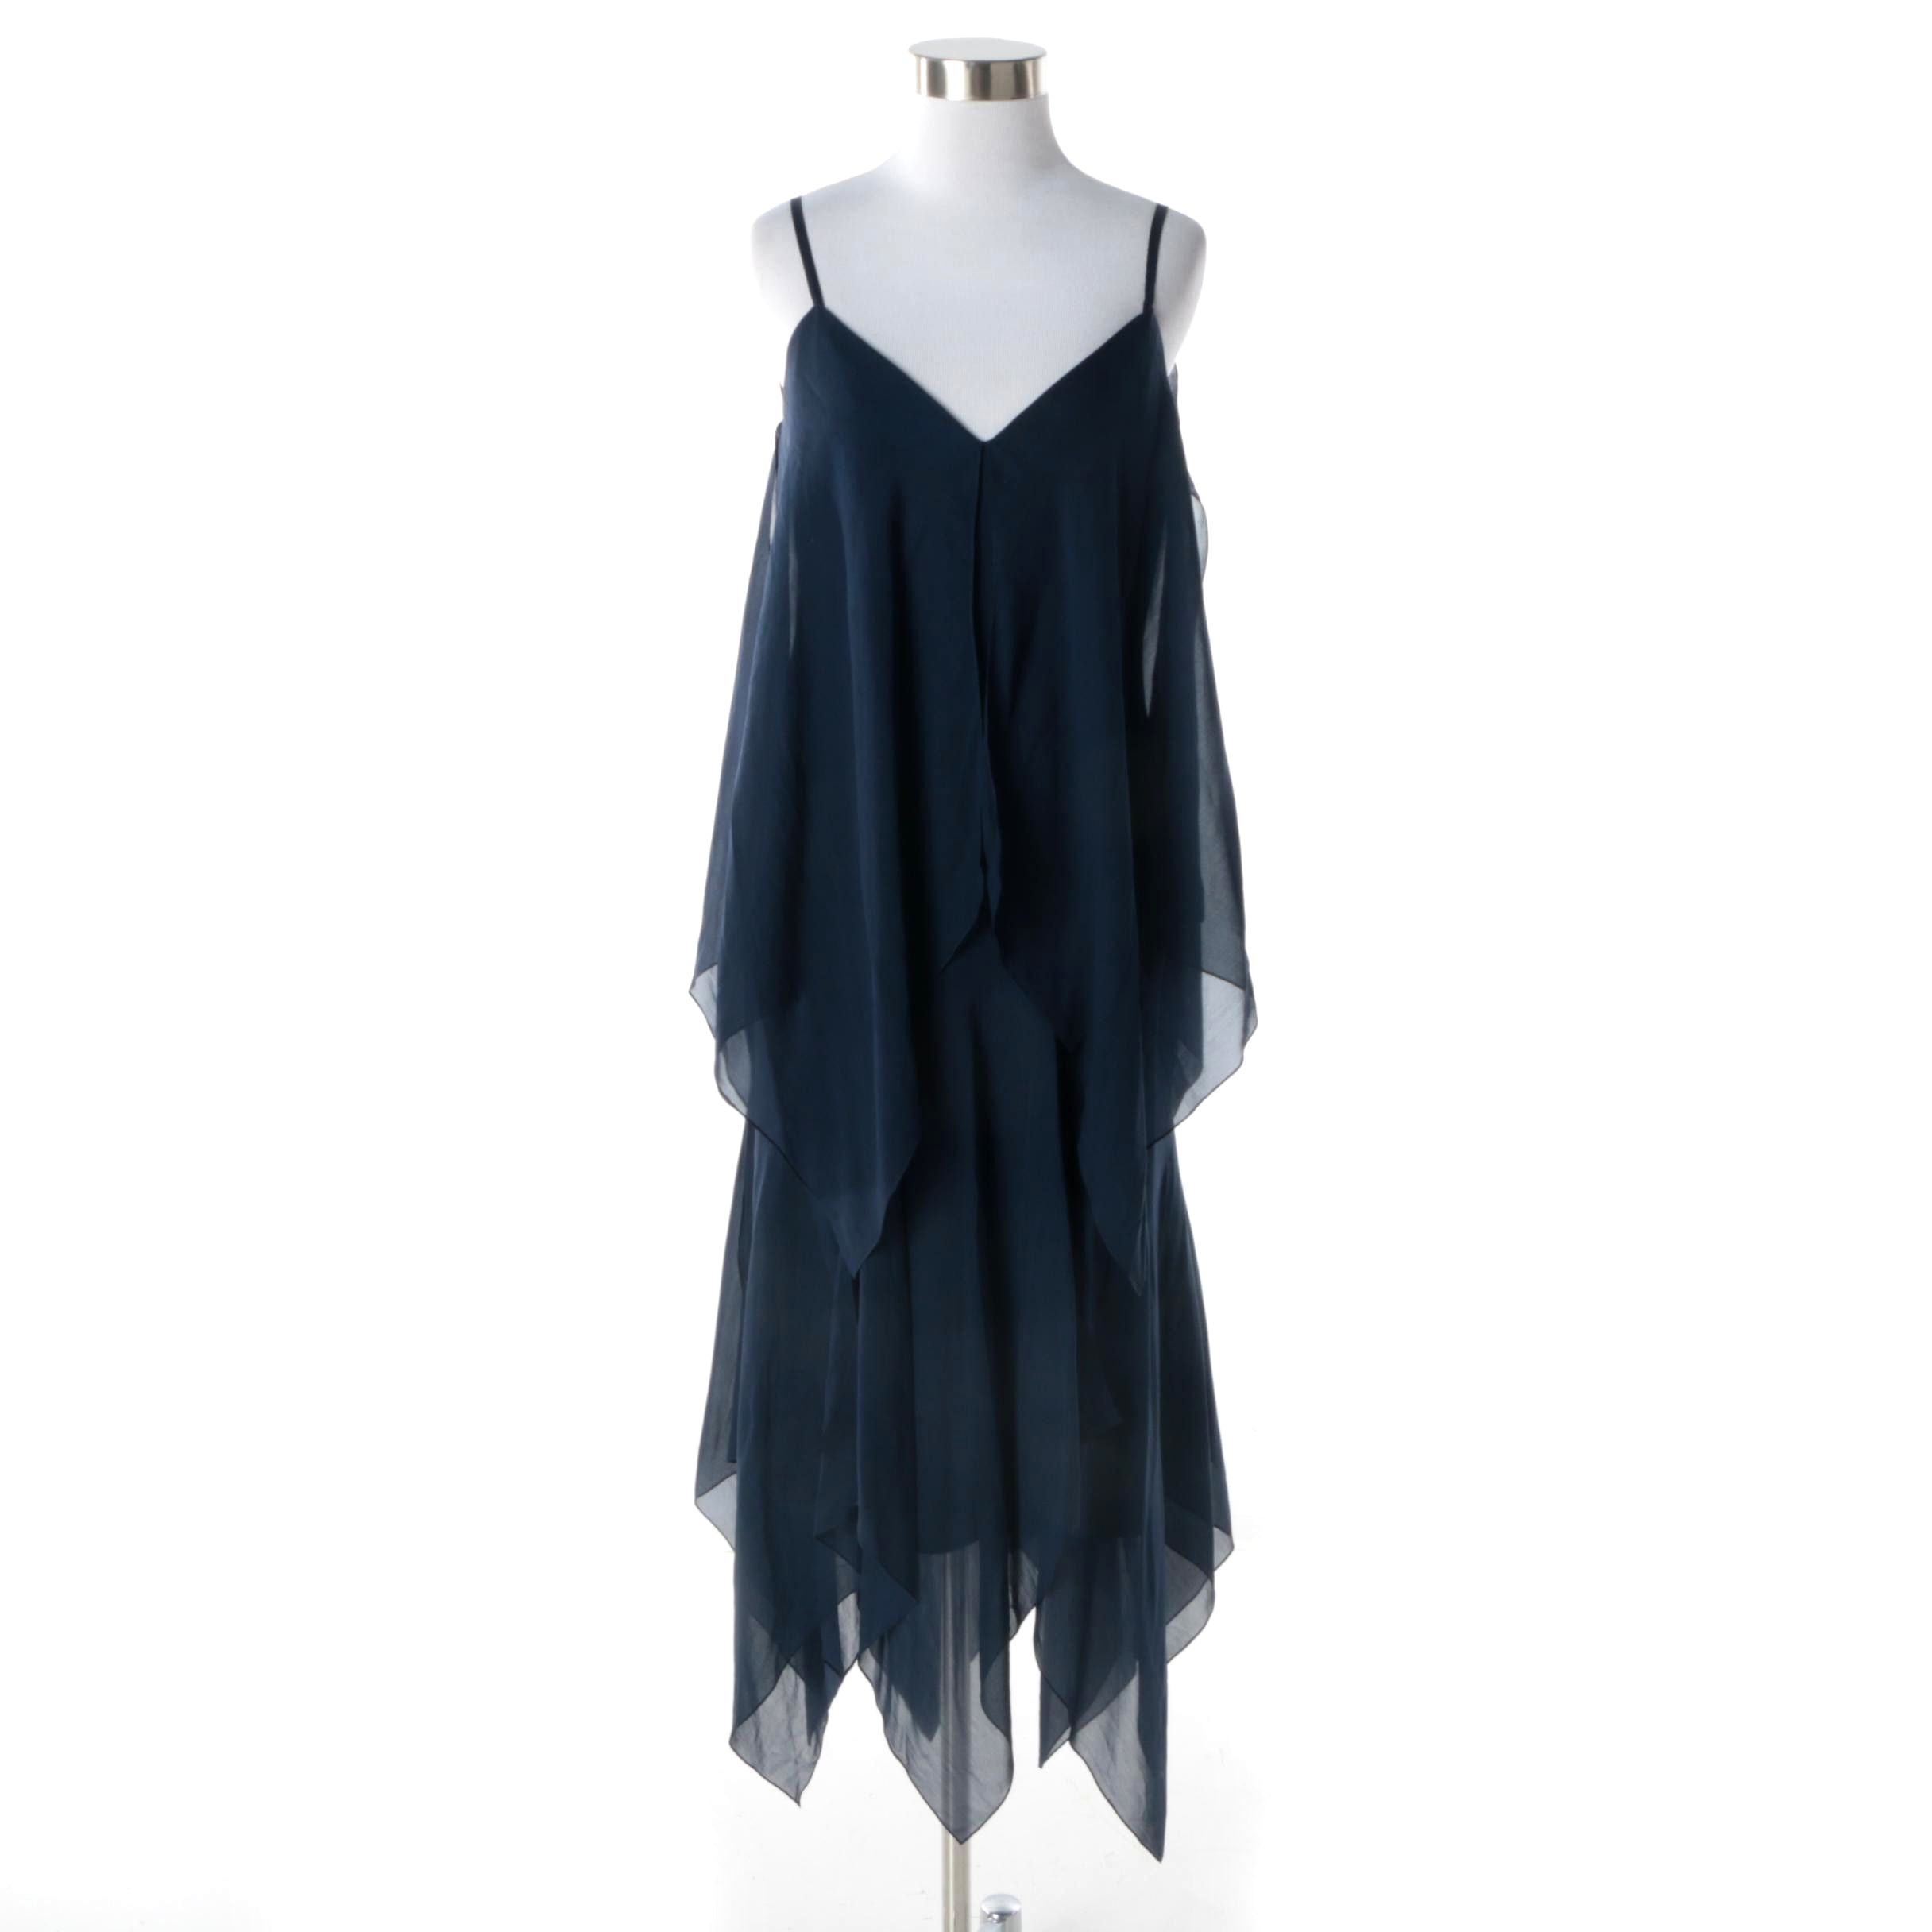 1970s Sheer Layered Navy Chiffon Handkerchief Hem Midi Evening Dress